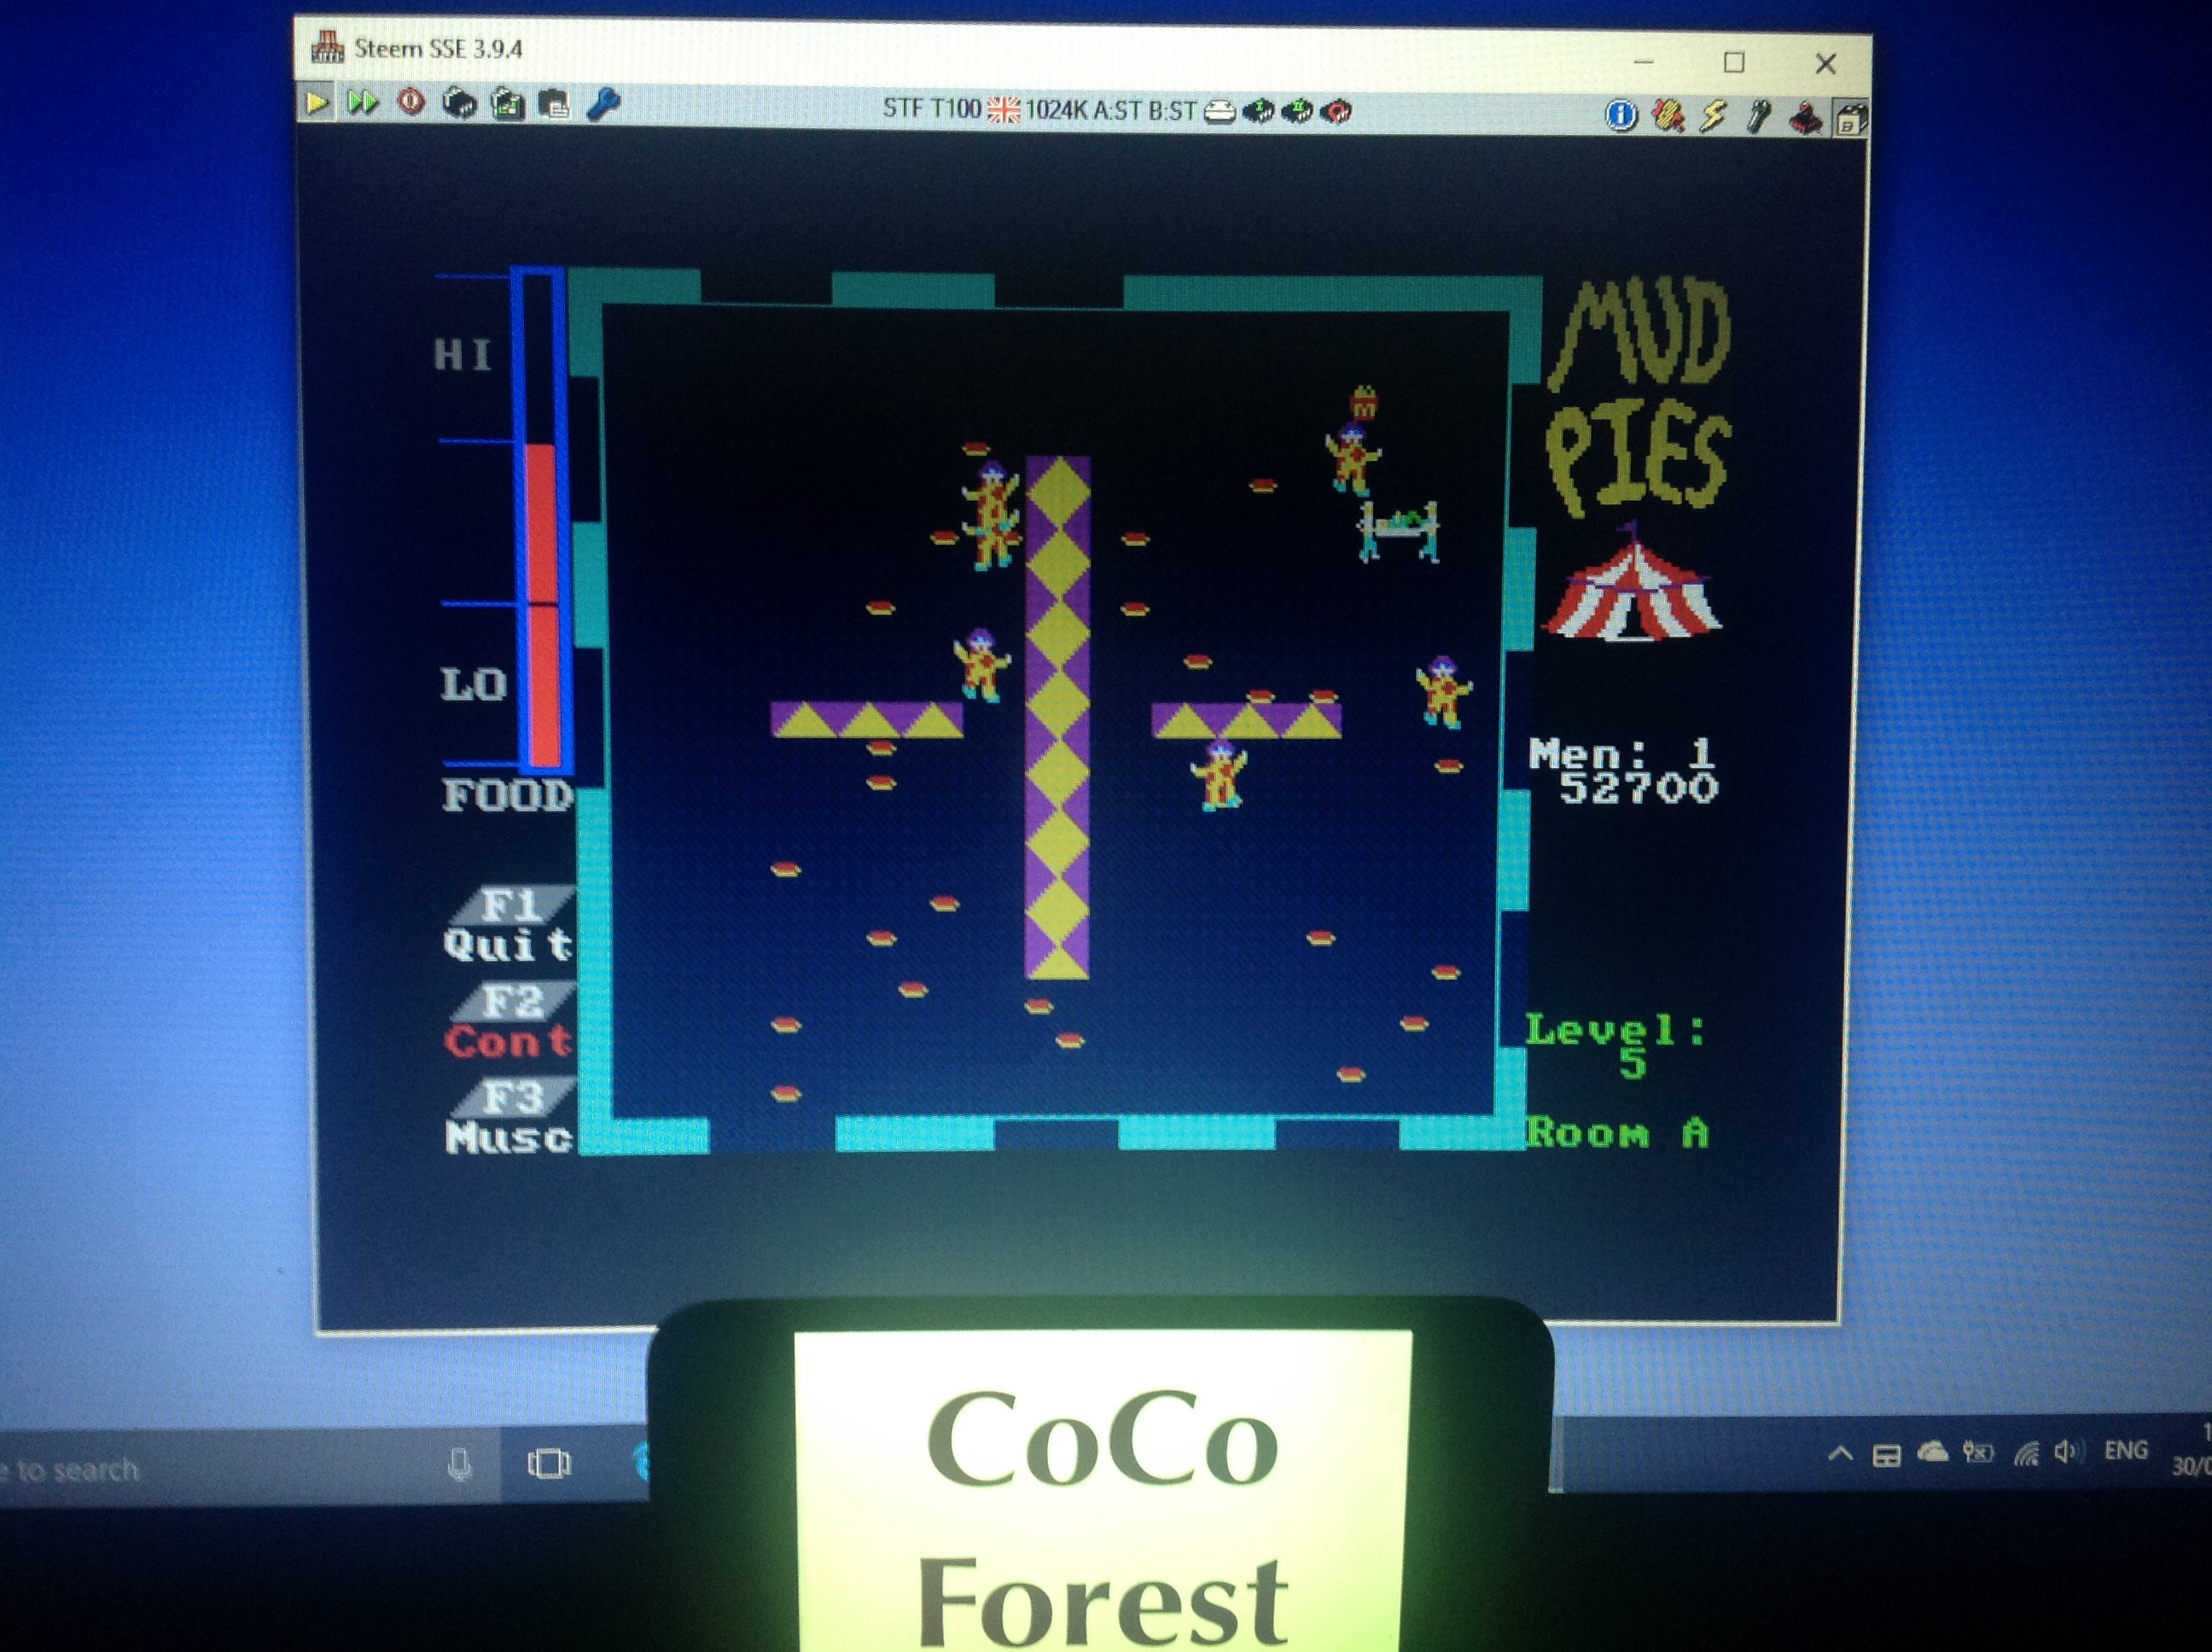 CoCoForest: Mudpies (Atari ST Emulated) 52,700 points on 2018-01-30 10:47:14